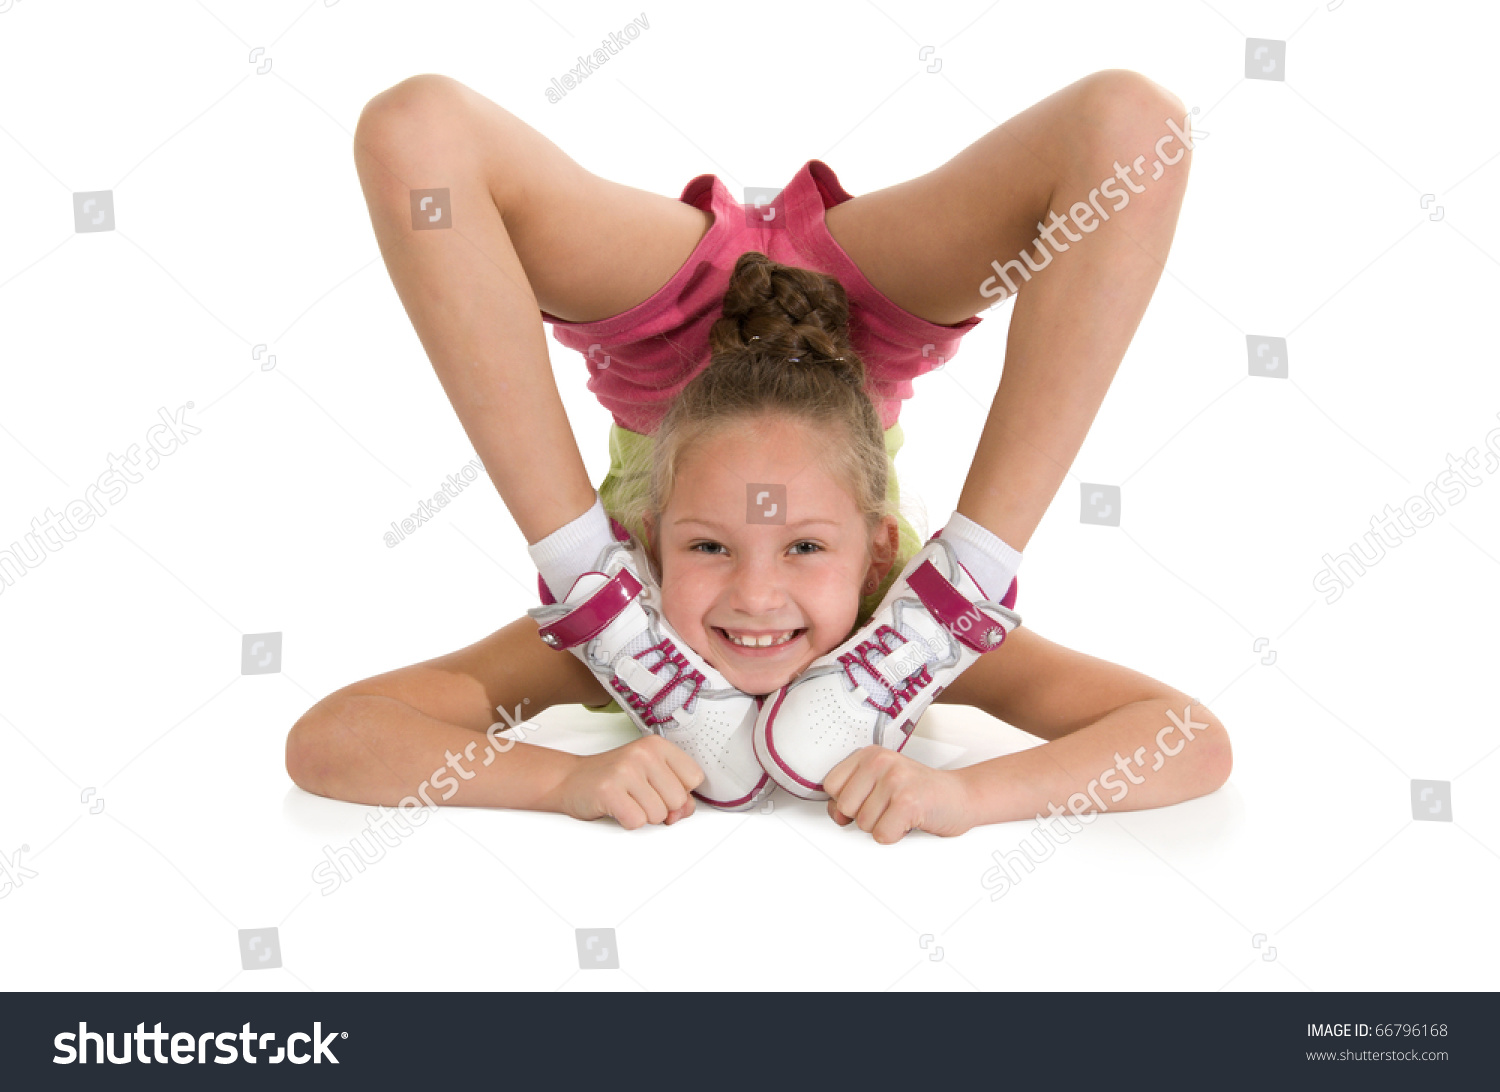 Has touched flexible gymnast girls right. good